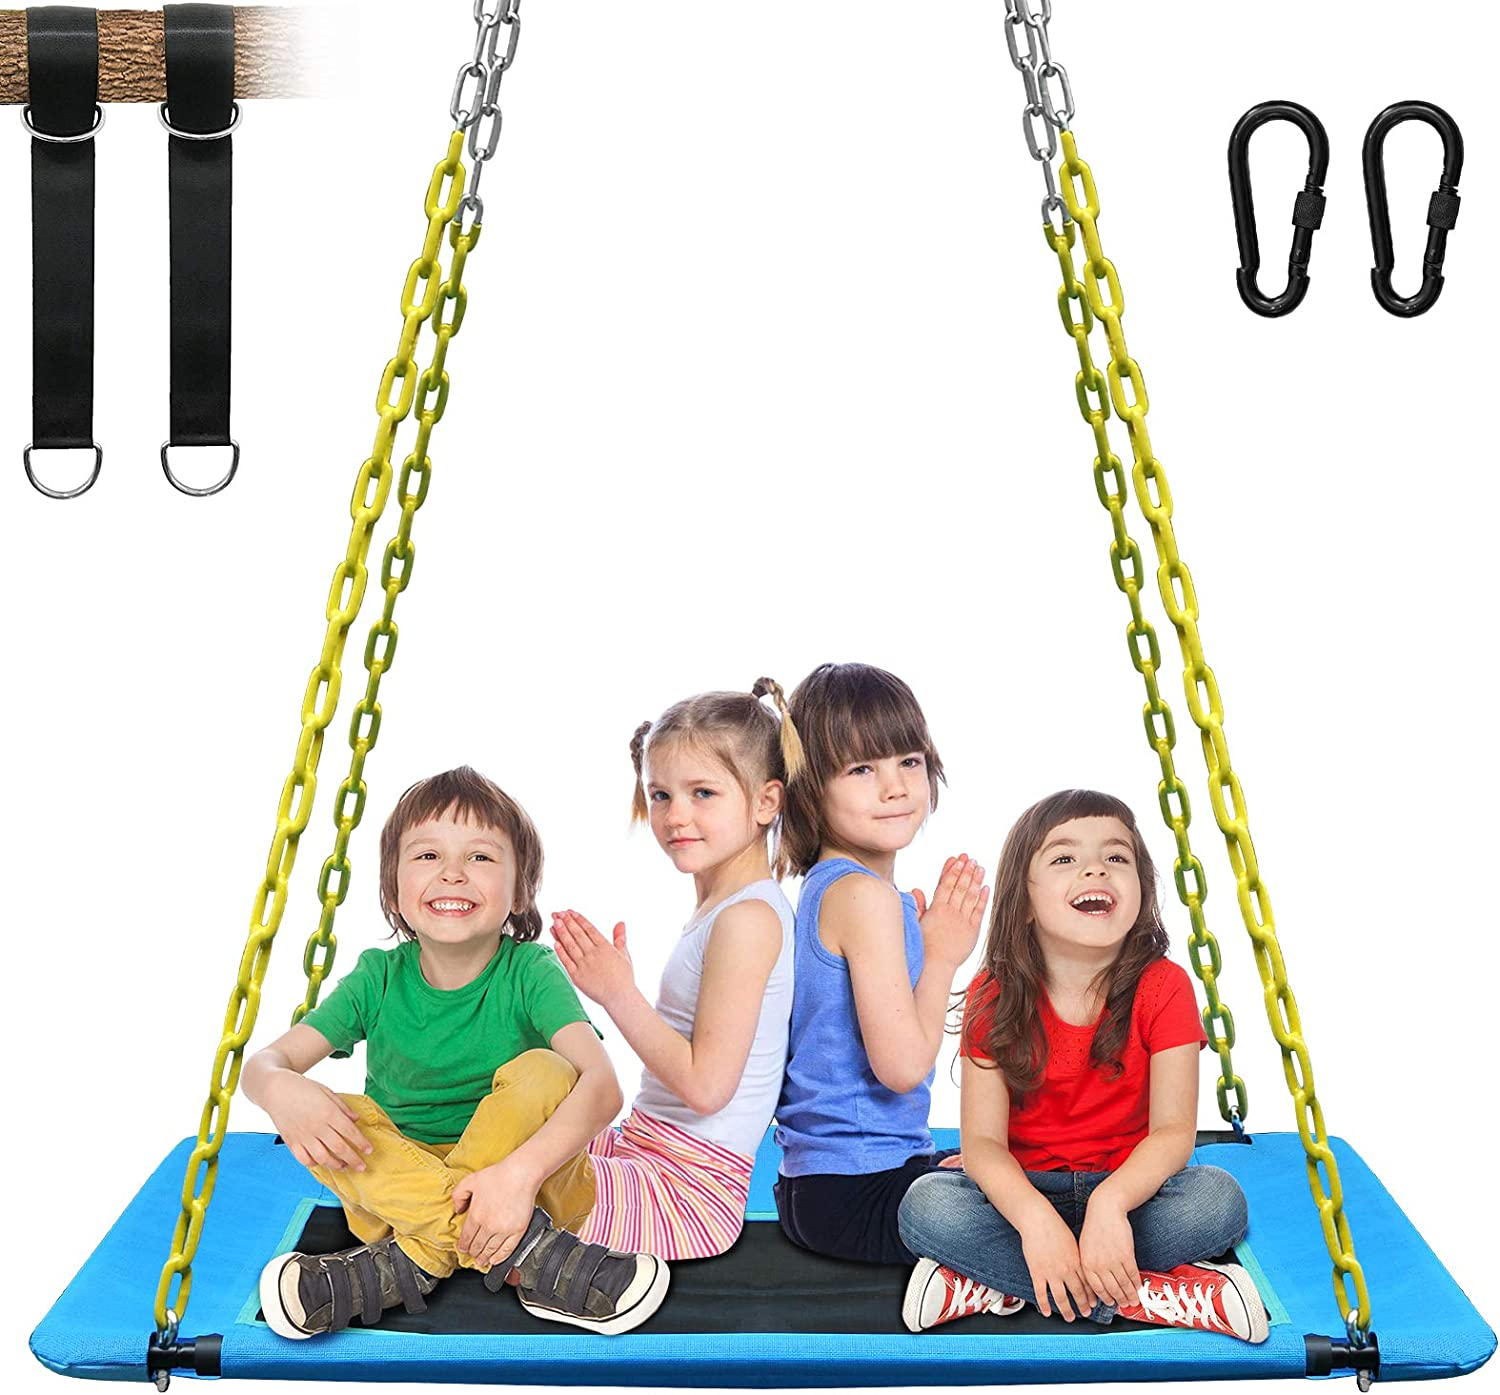 40% Off Coupon – 60 Inch Platform Tree Swing for Kids and Adults